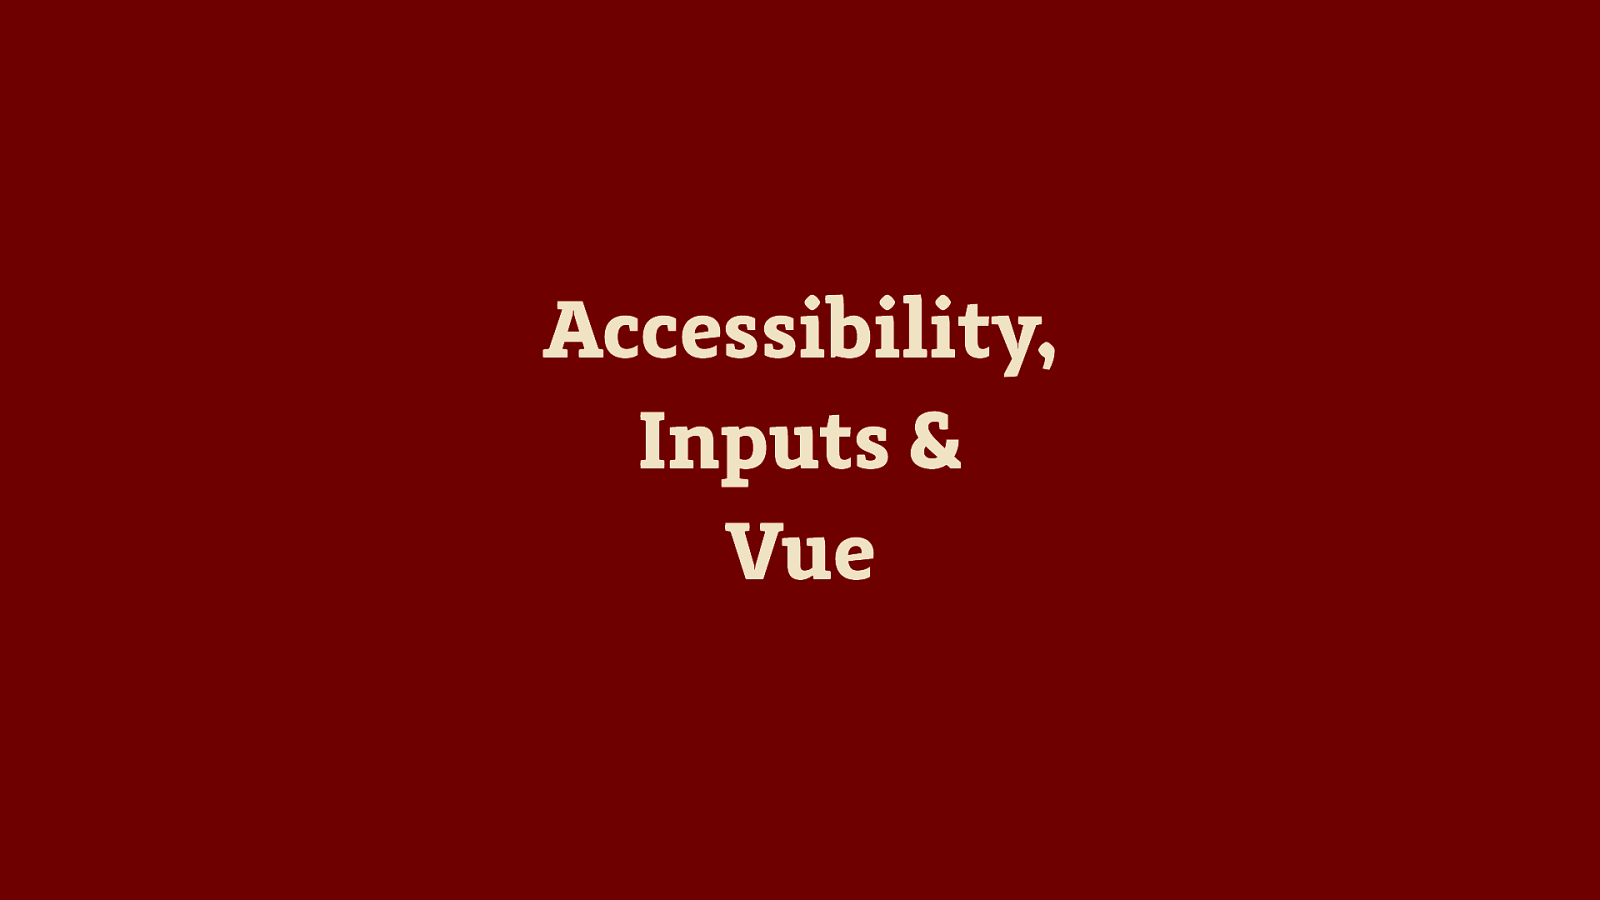 Accessibility, Inputs & Vue